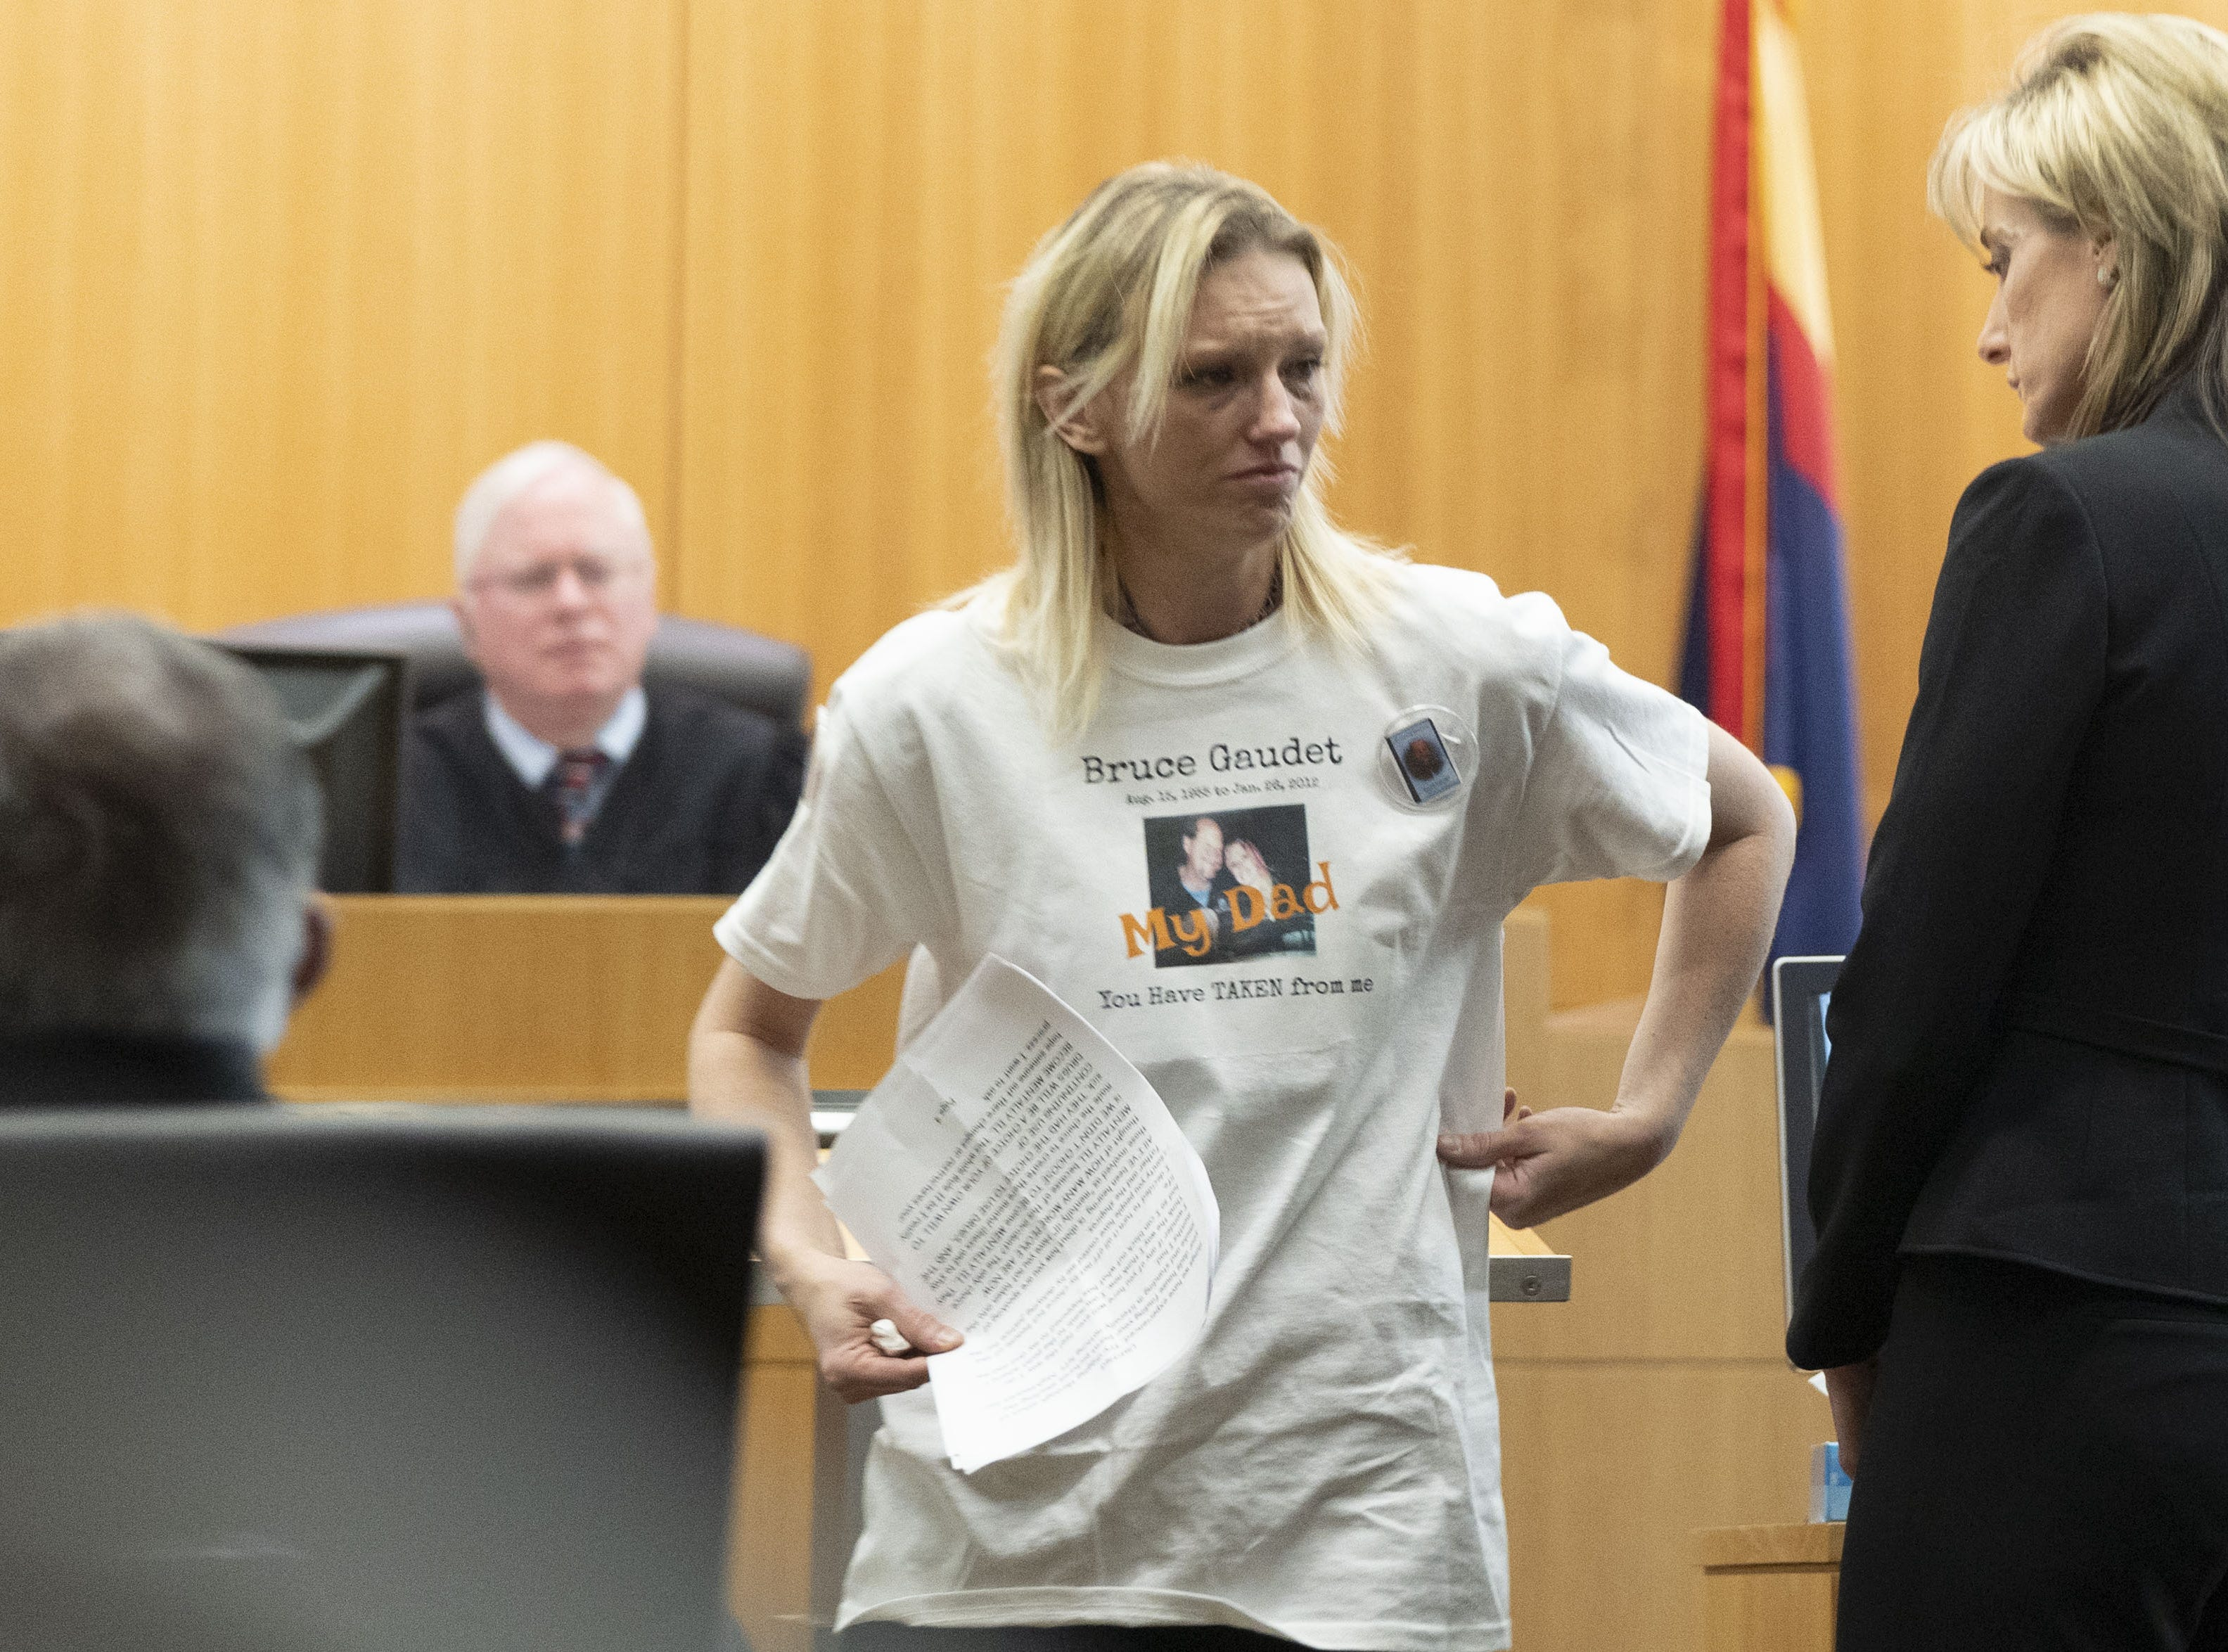 Jessica Gaudet, 34, daughter of Bruce Gaudet, speaks to Judge Warren Granville about how hard it is for them to lose their dad.